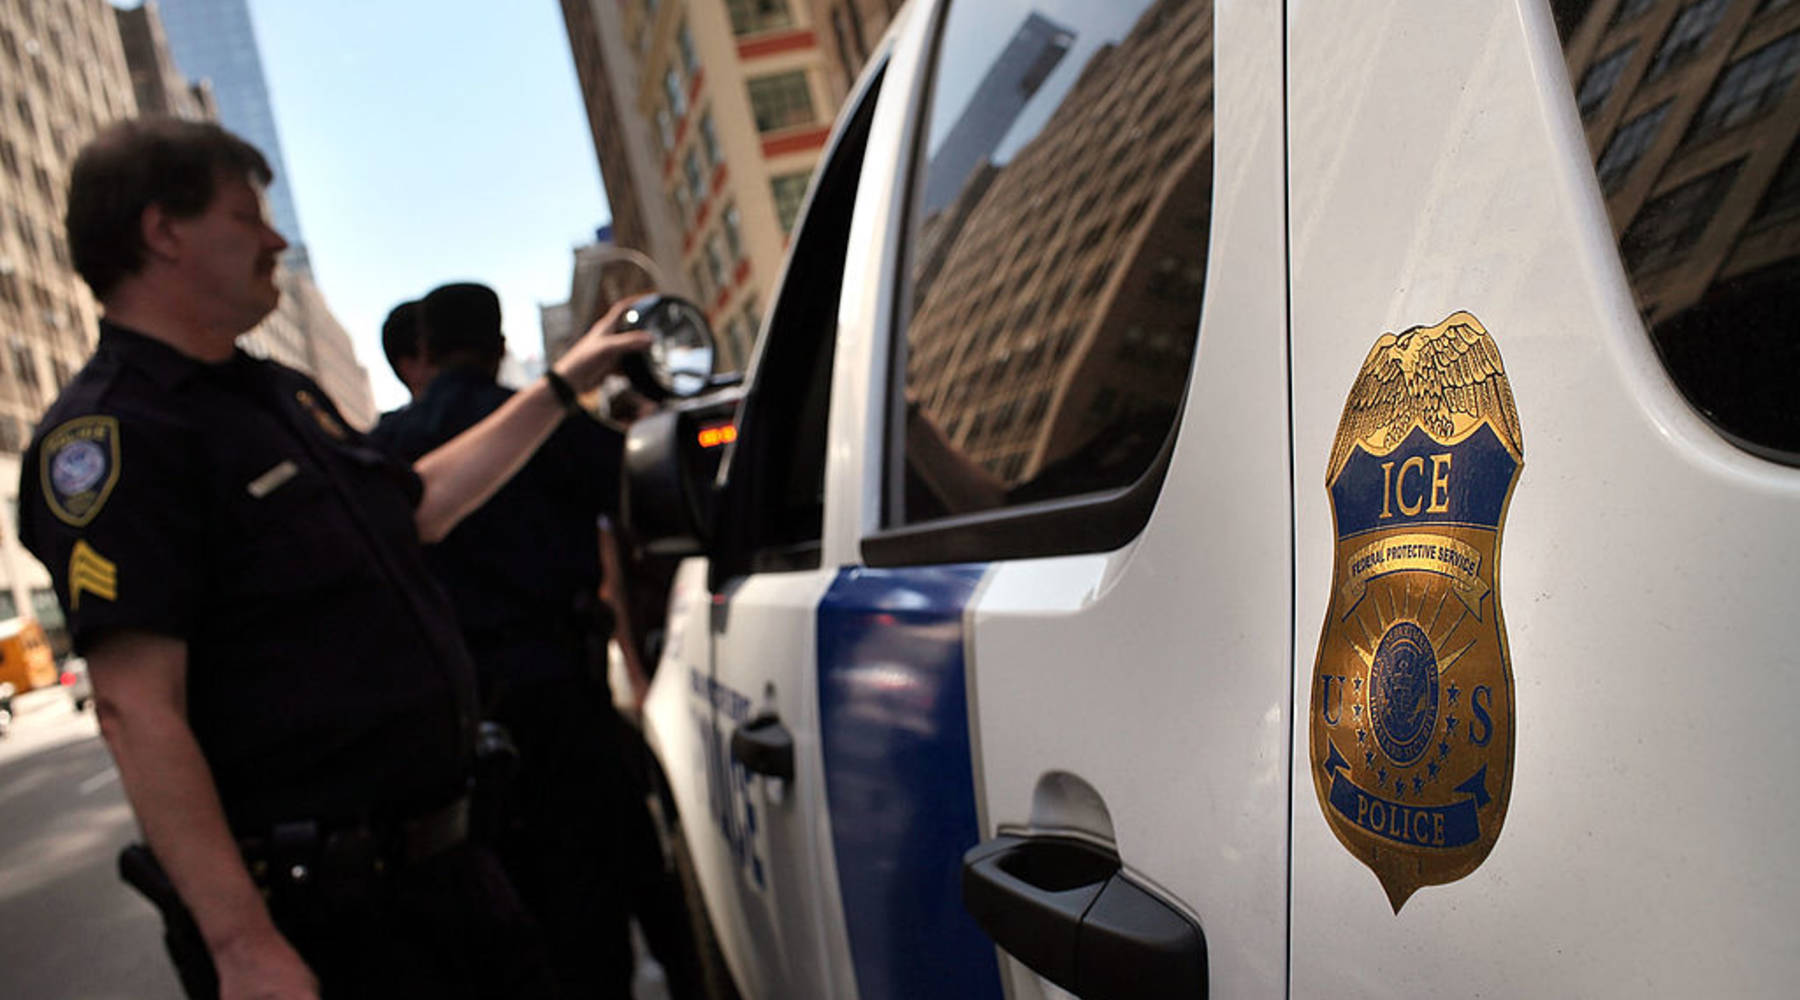 Federal immigration agents say there will be more workplace raids